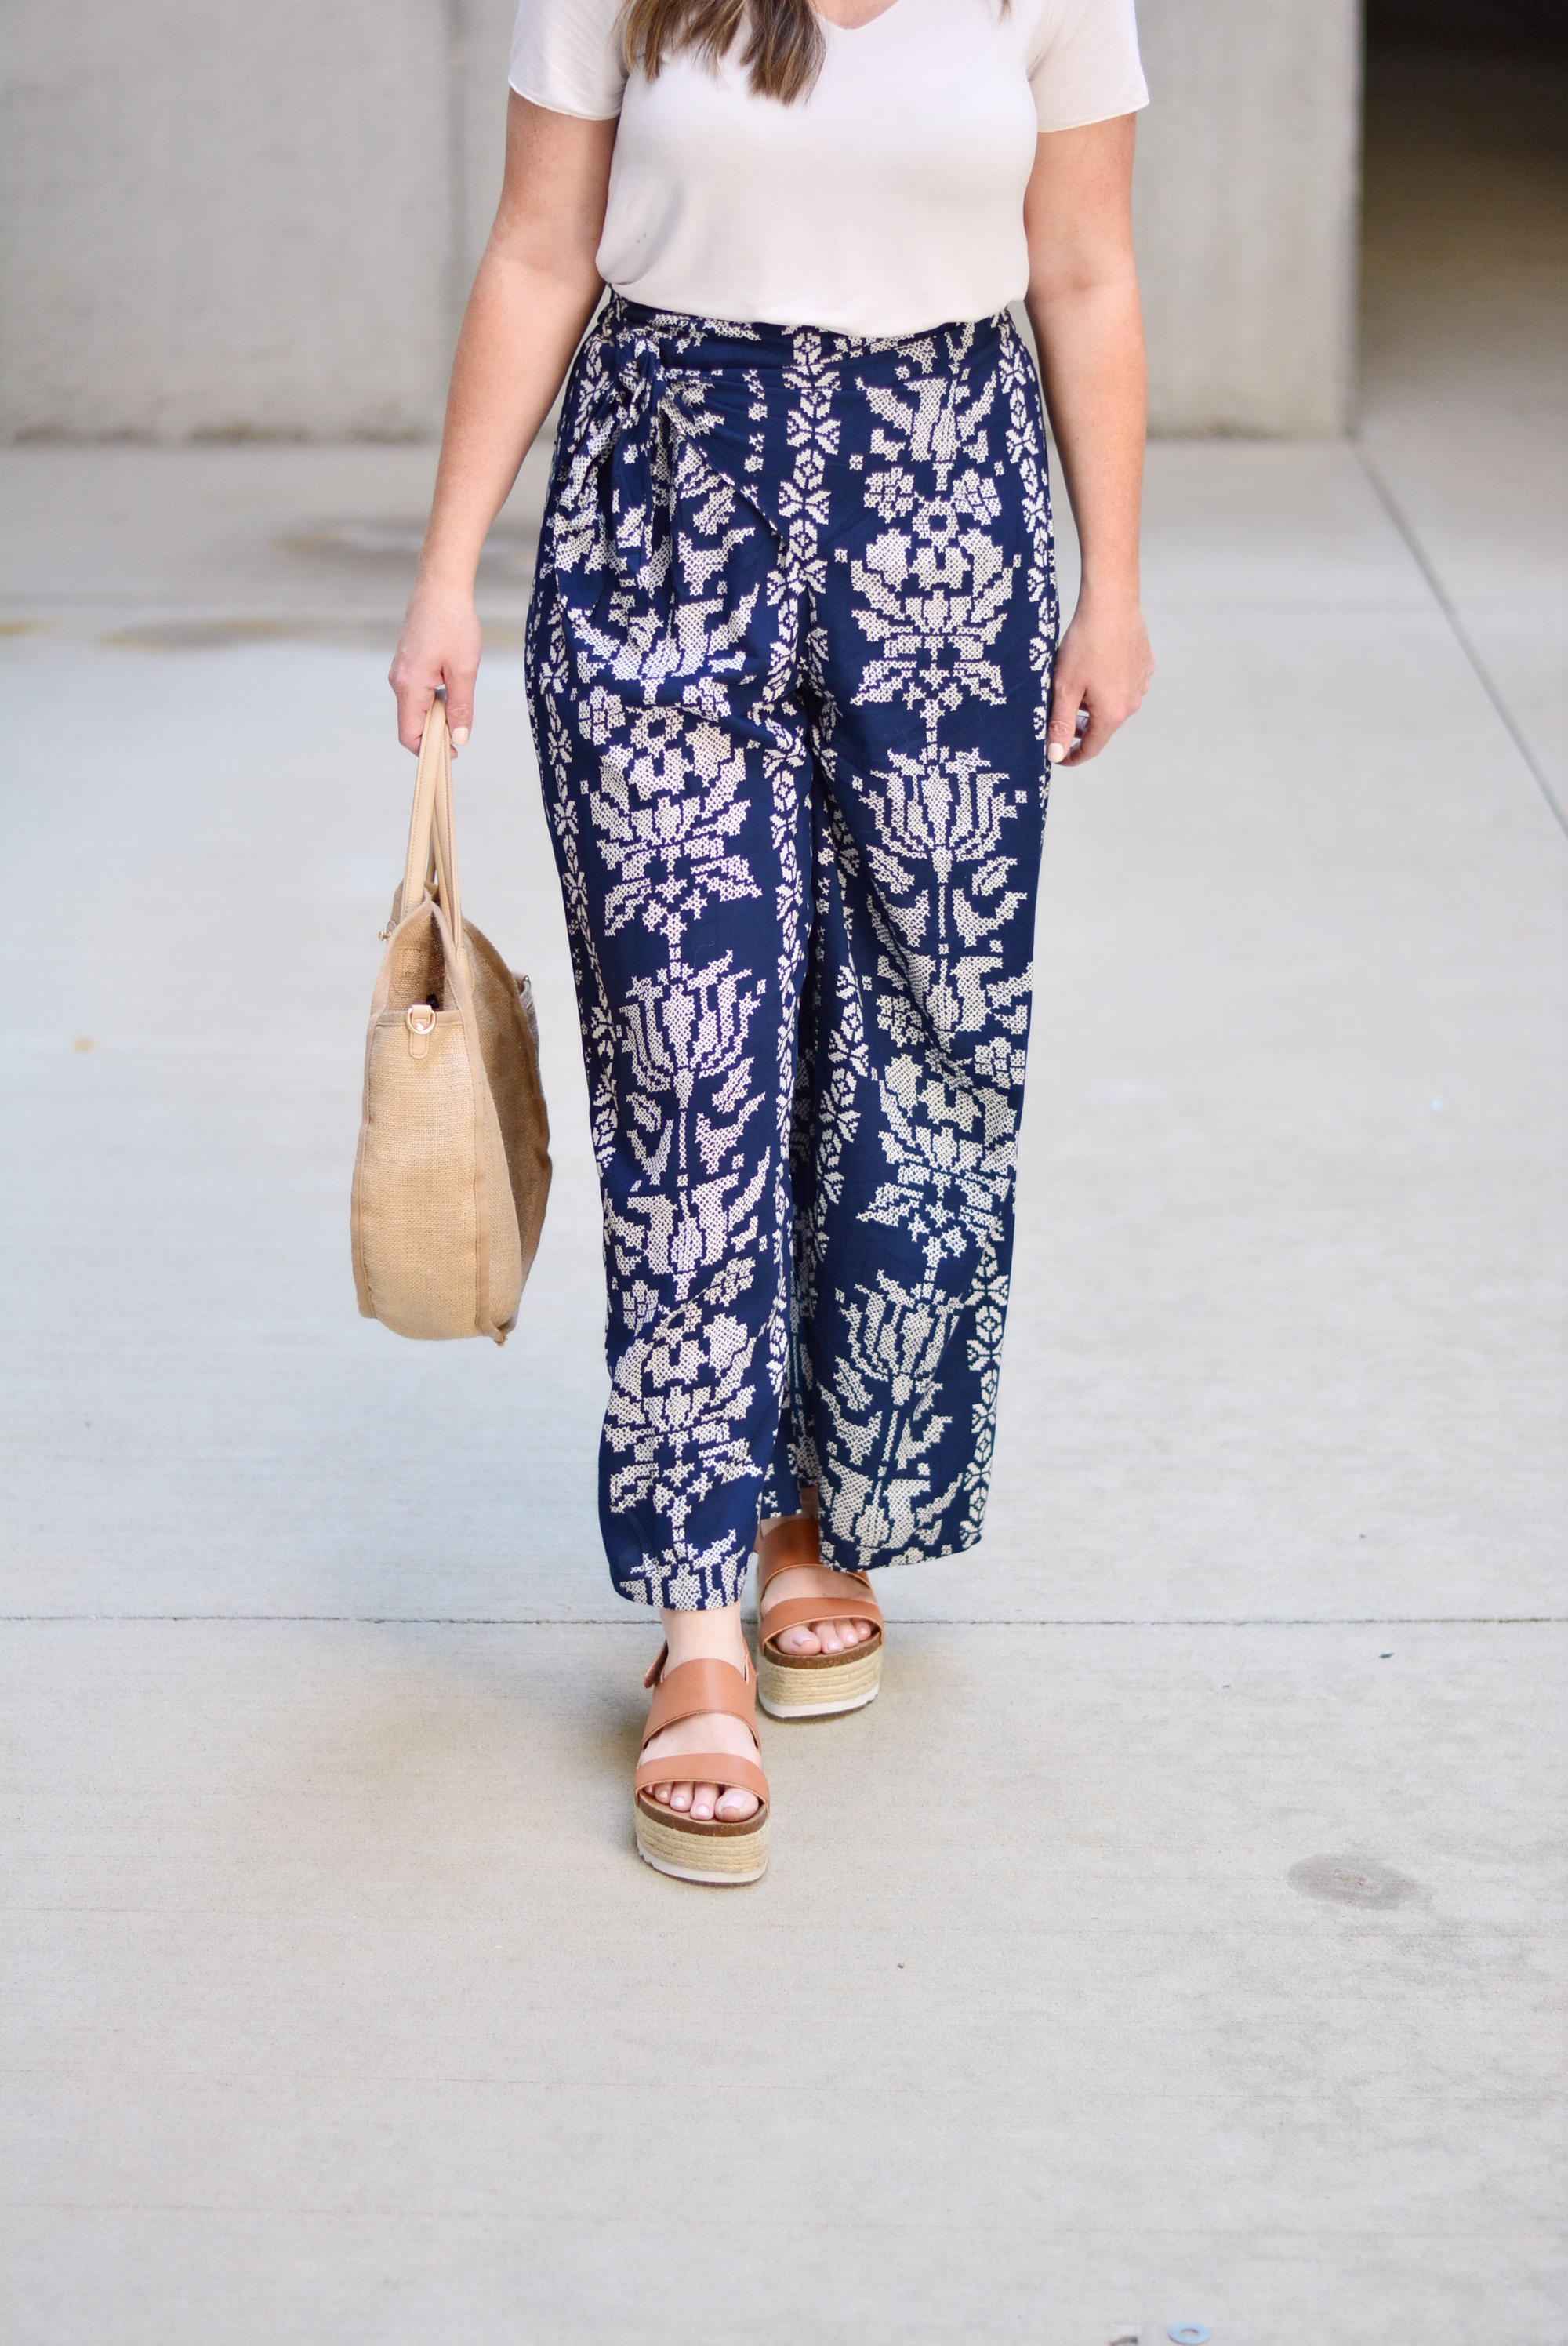 Chic printed wide leg pant for summer